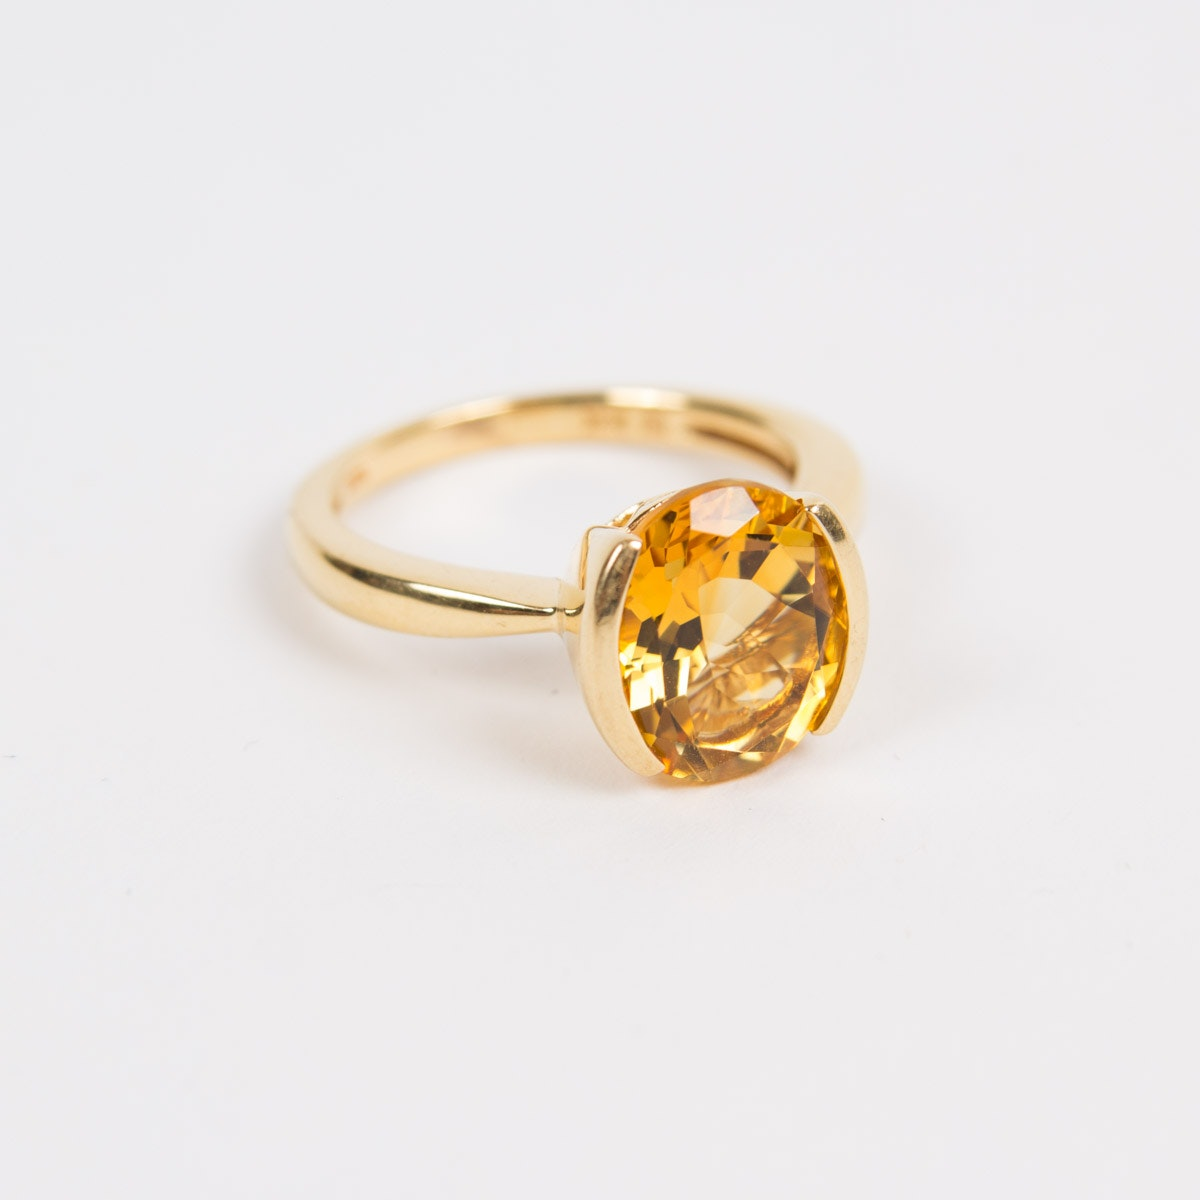 18K Gold and Citrine Ring, Size 8-1/4